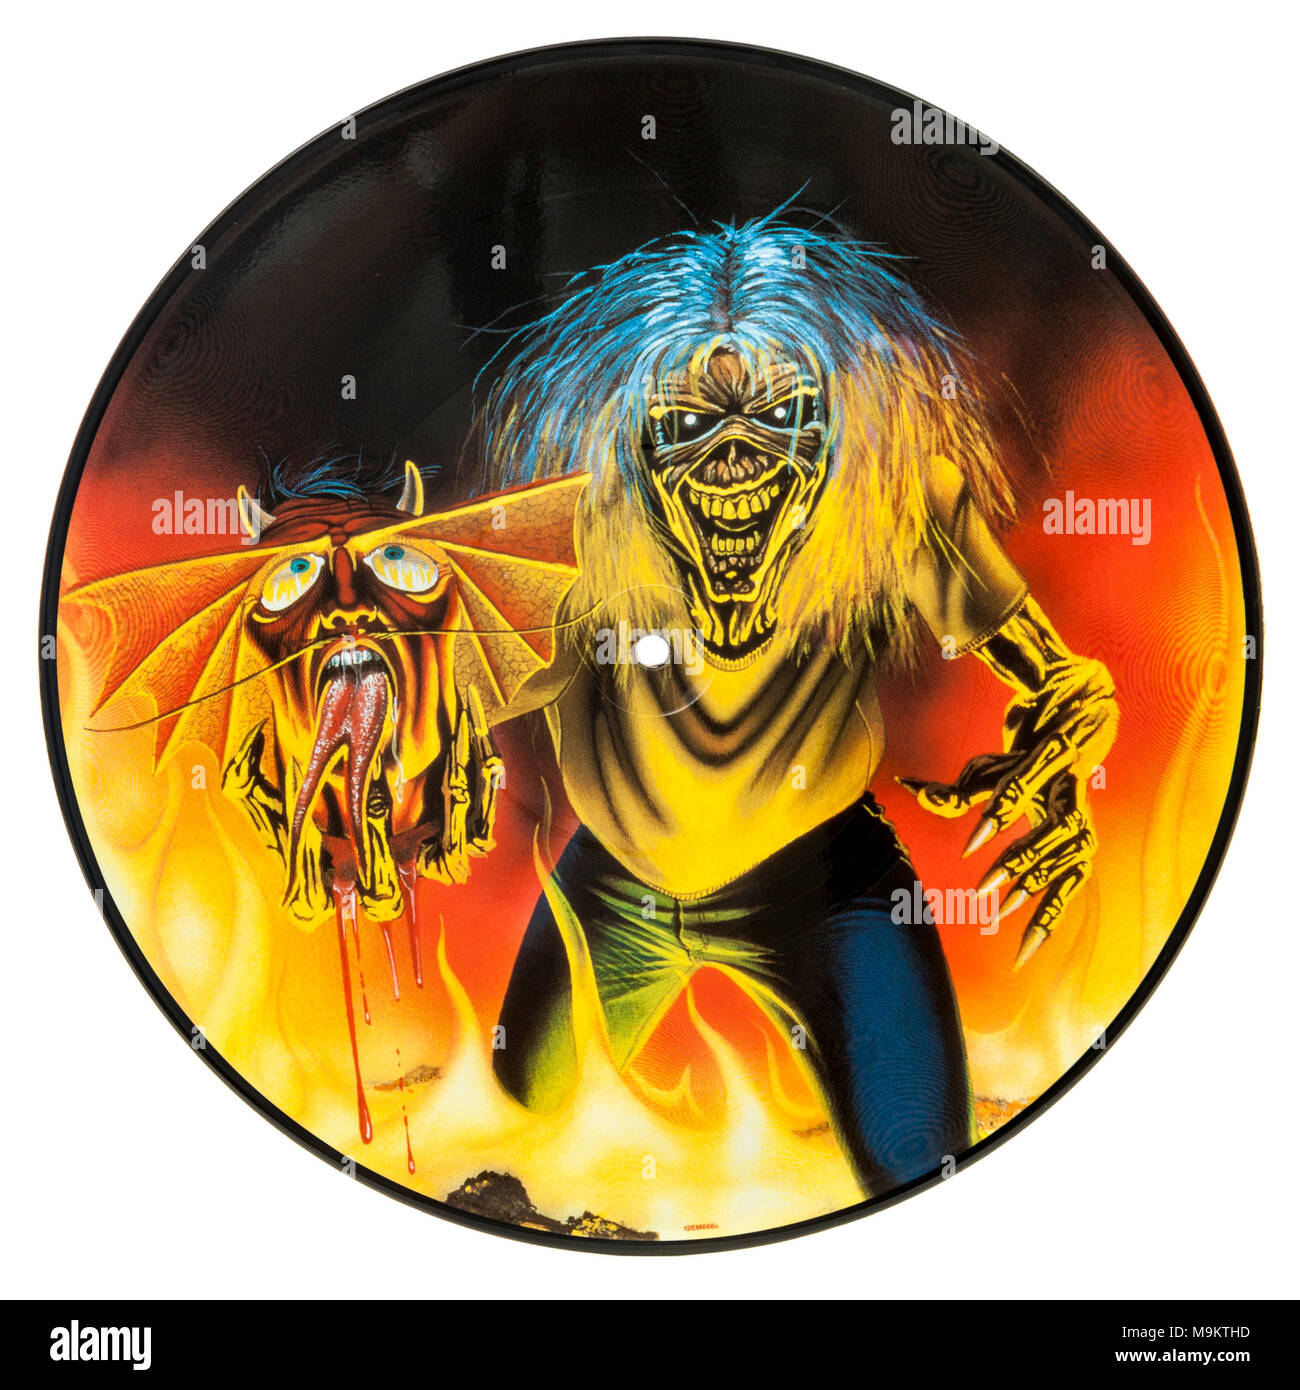 2005 Limited Edition Picture Disc (vinyl record) by the British heavy metal band Iron Maiden (The Number of the Beast) - Stock Image